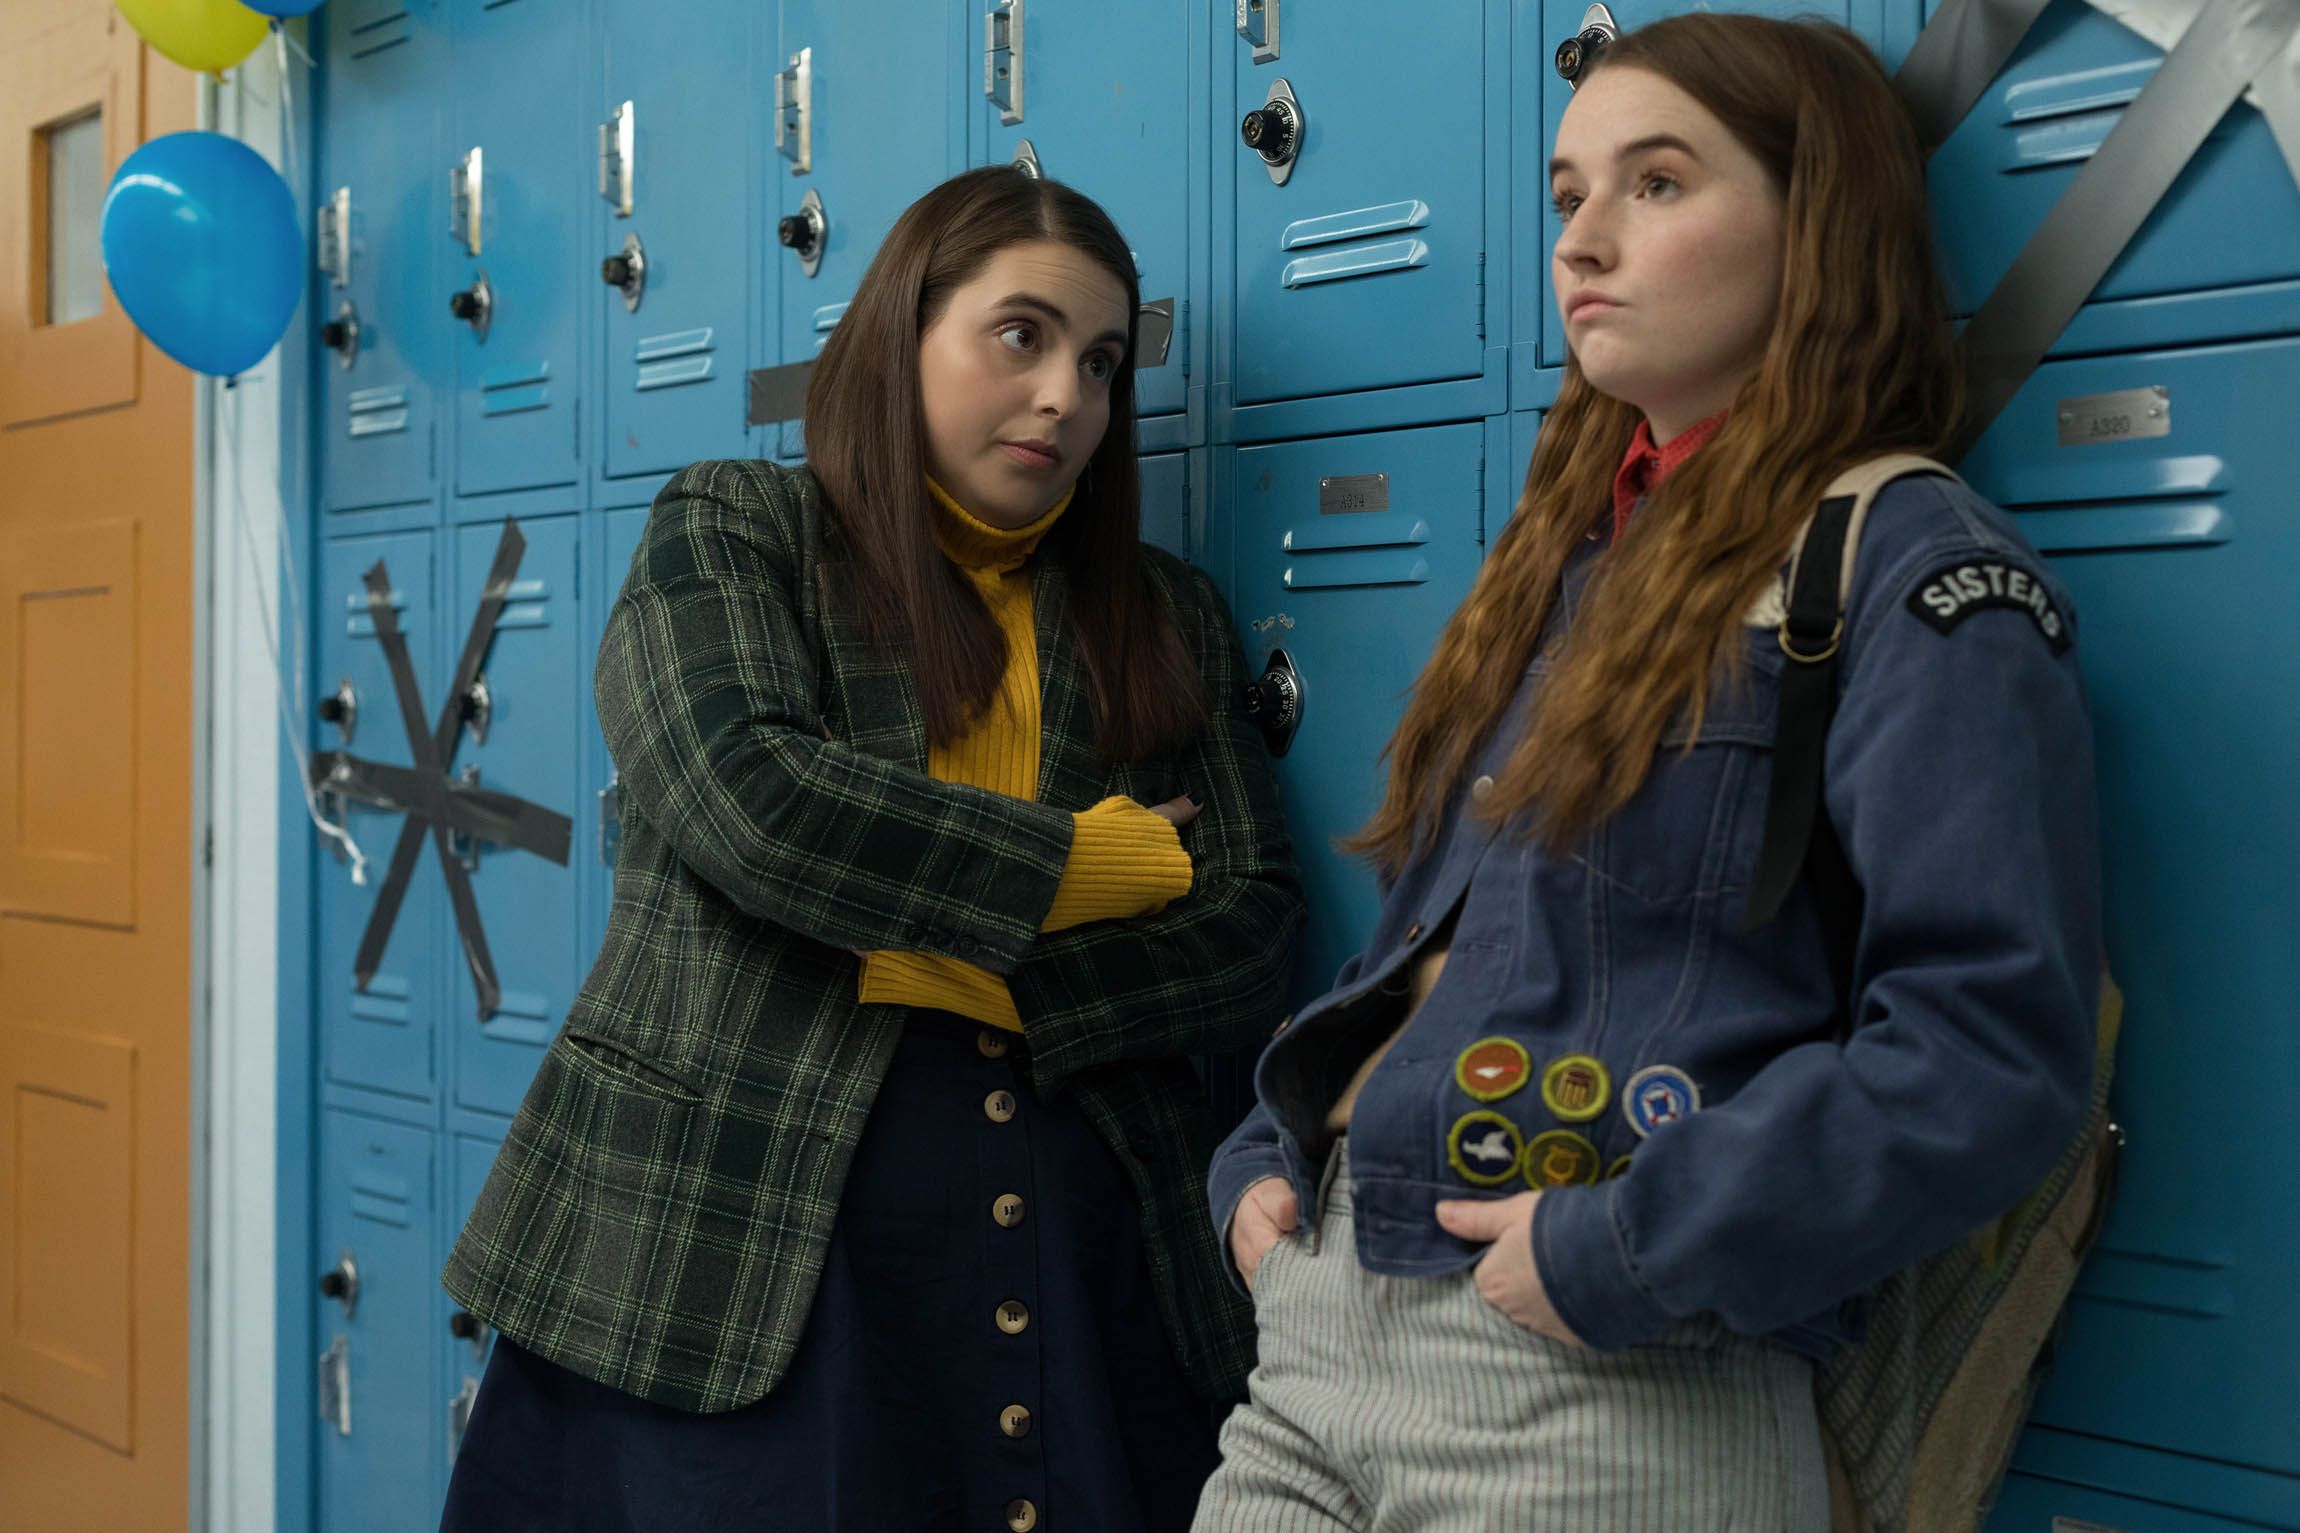 Booksmart Is so Much More Than Just 'Superbad for Girls'